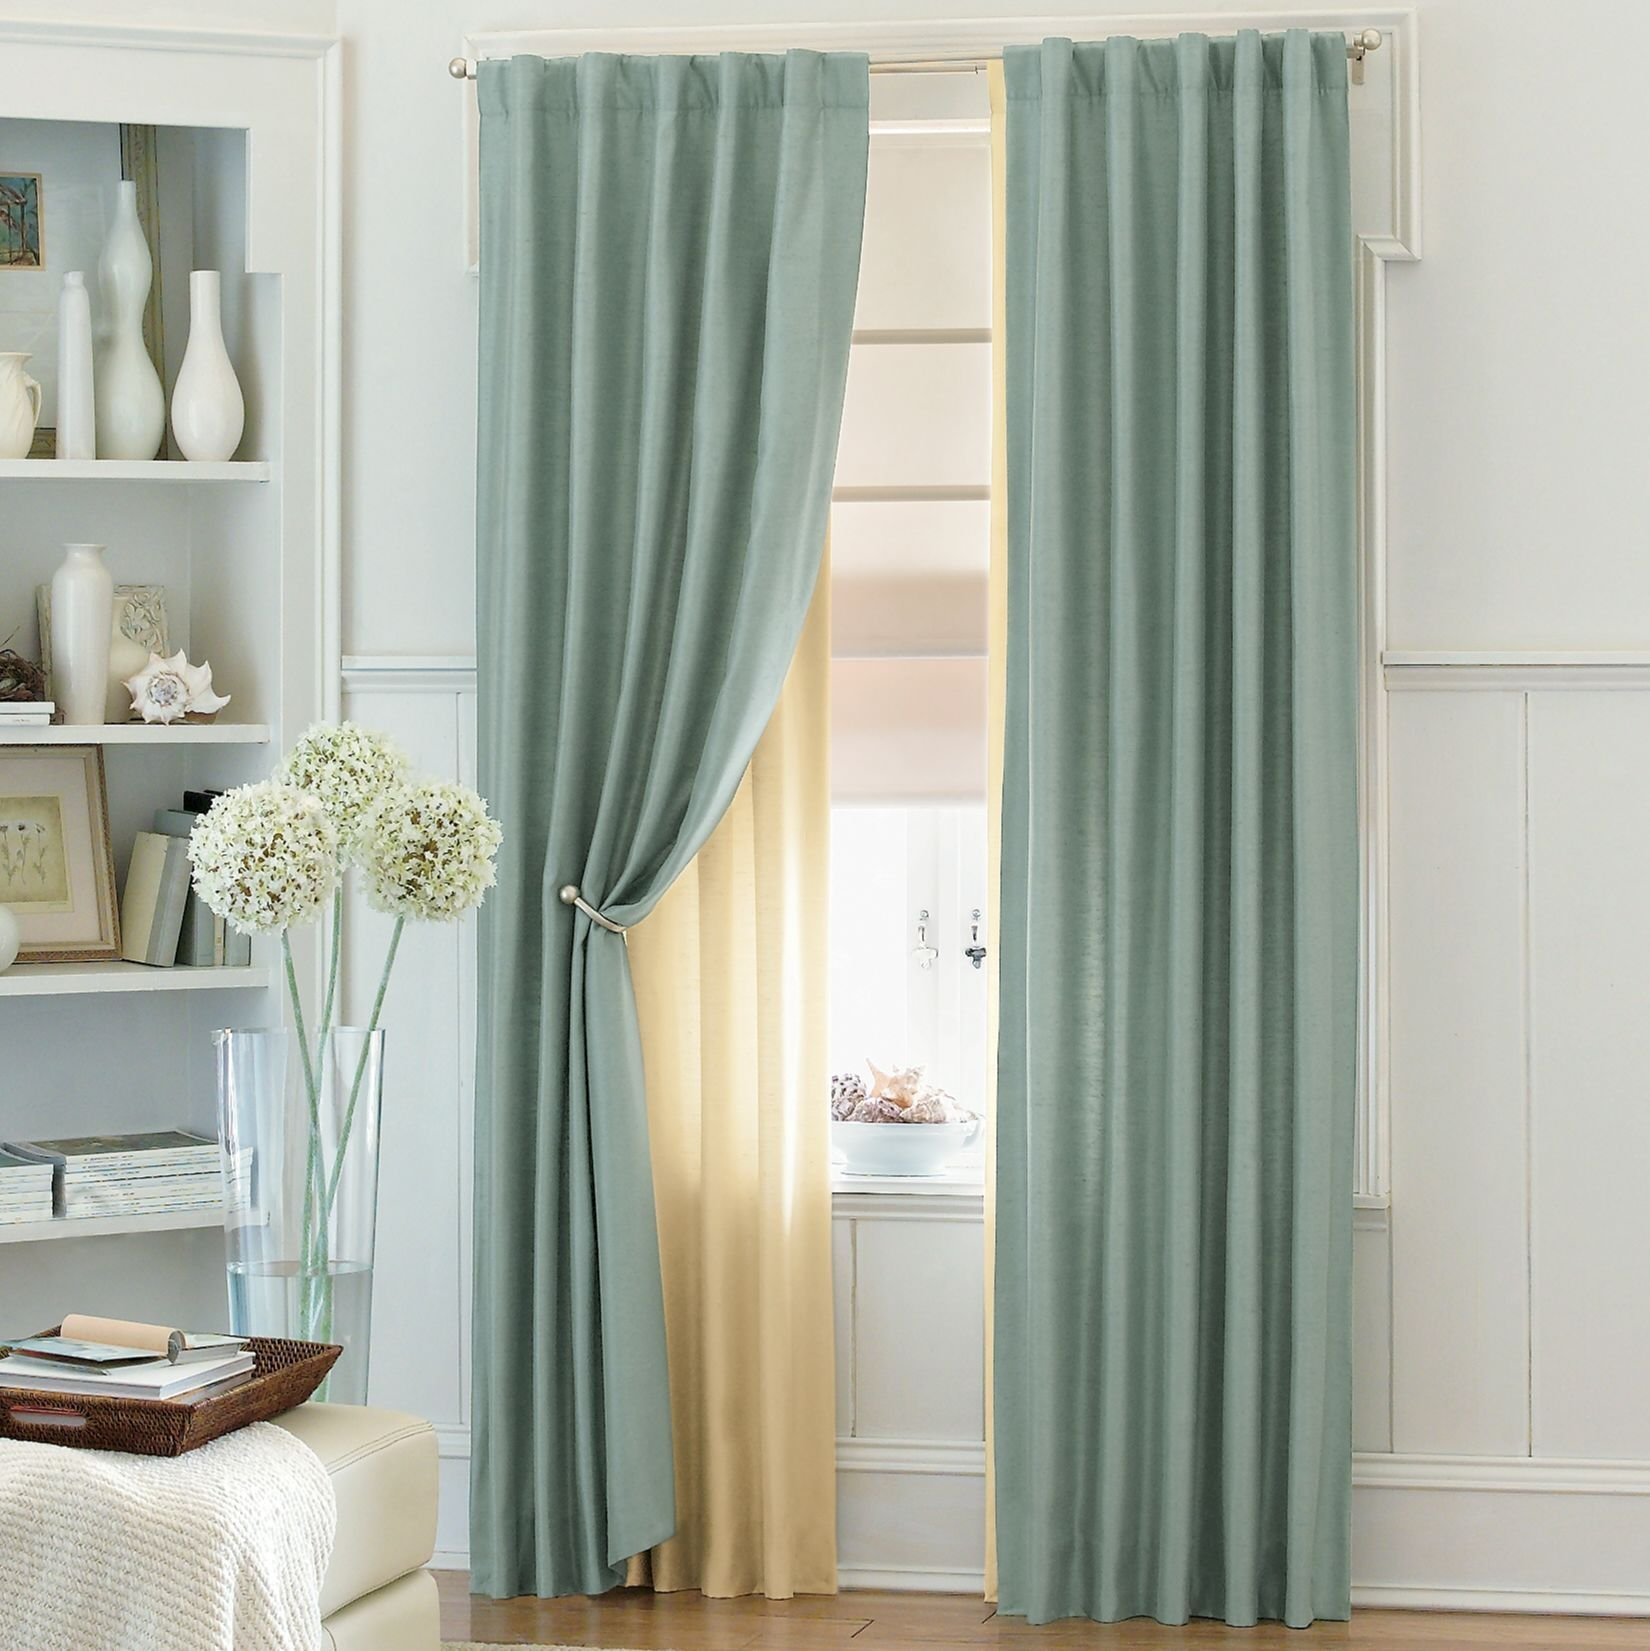 Curtains For Small Double Windows   Curtain decor, Curtains living ...